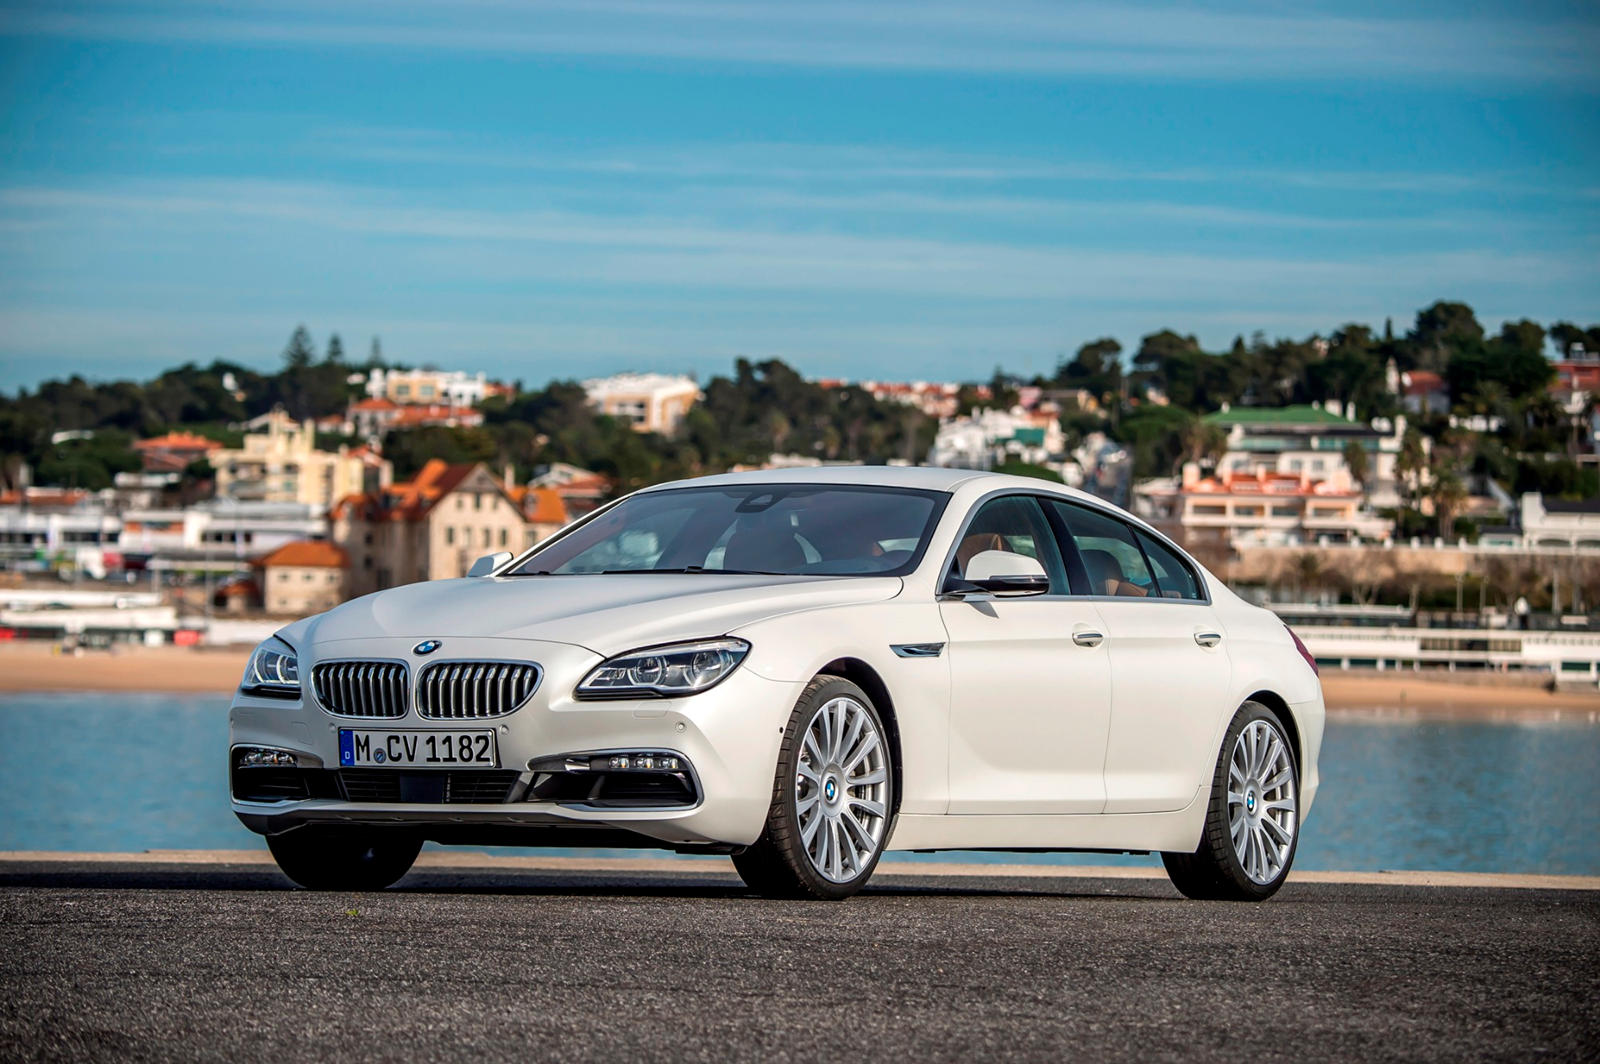 2018 Bmw 6 Series Gran Coupe Review Trims Specs Price New Interior Features Exterior Design And Specifications Carbuzz